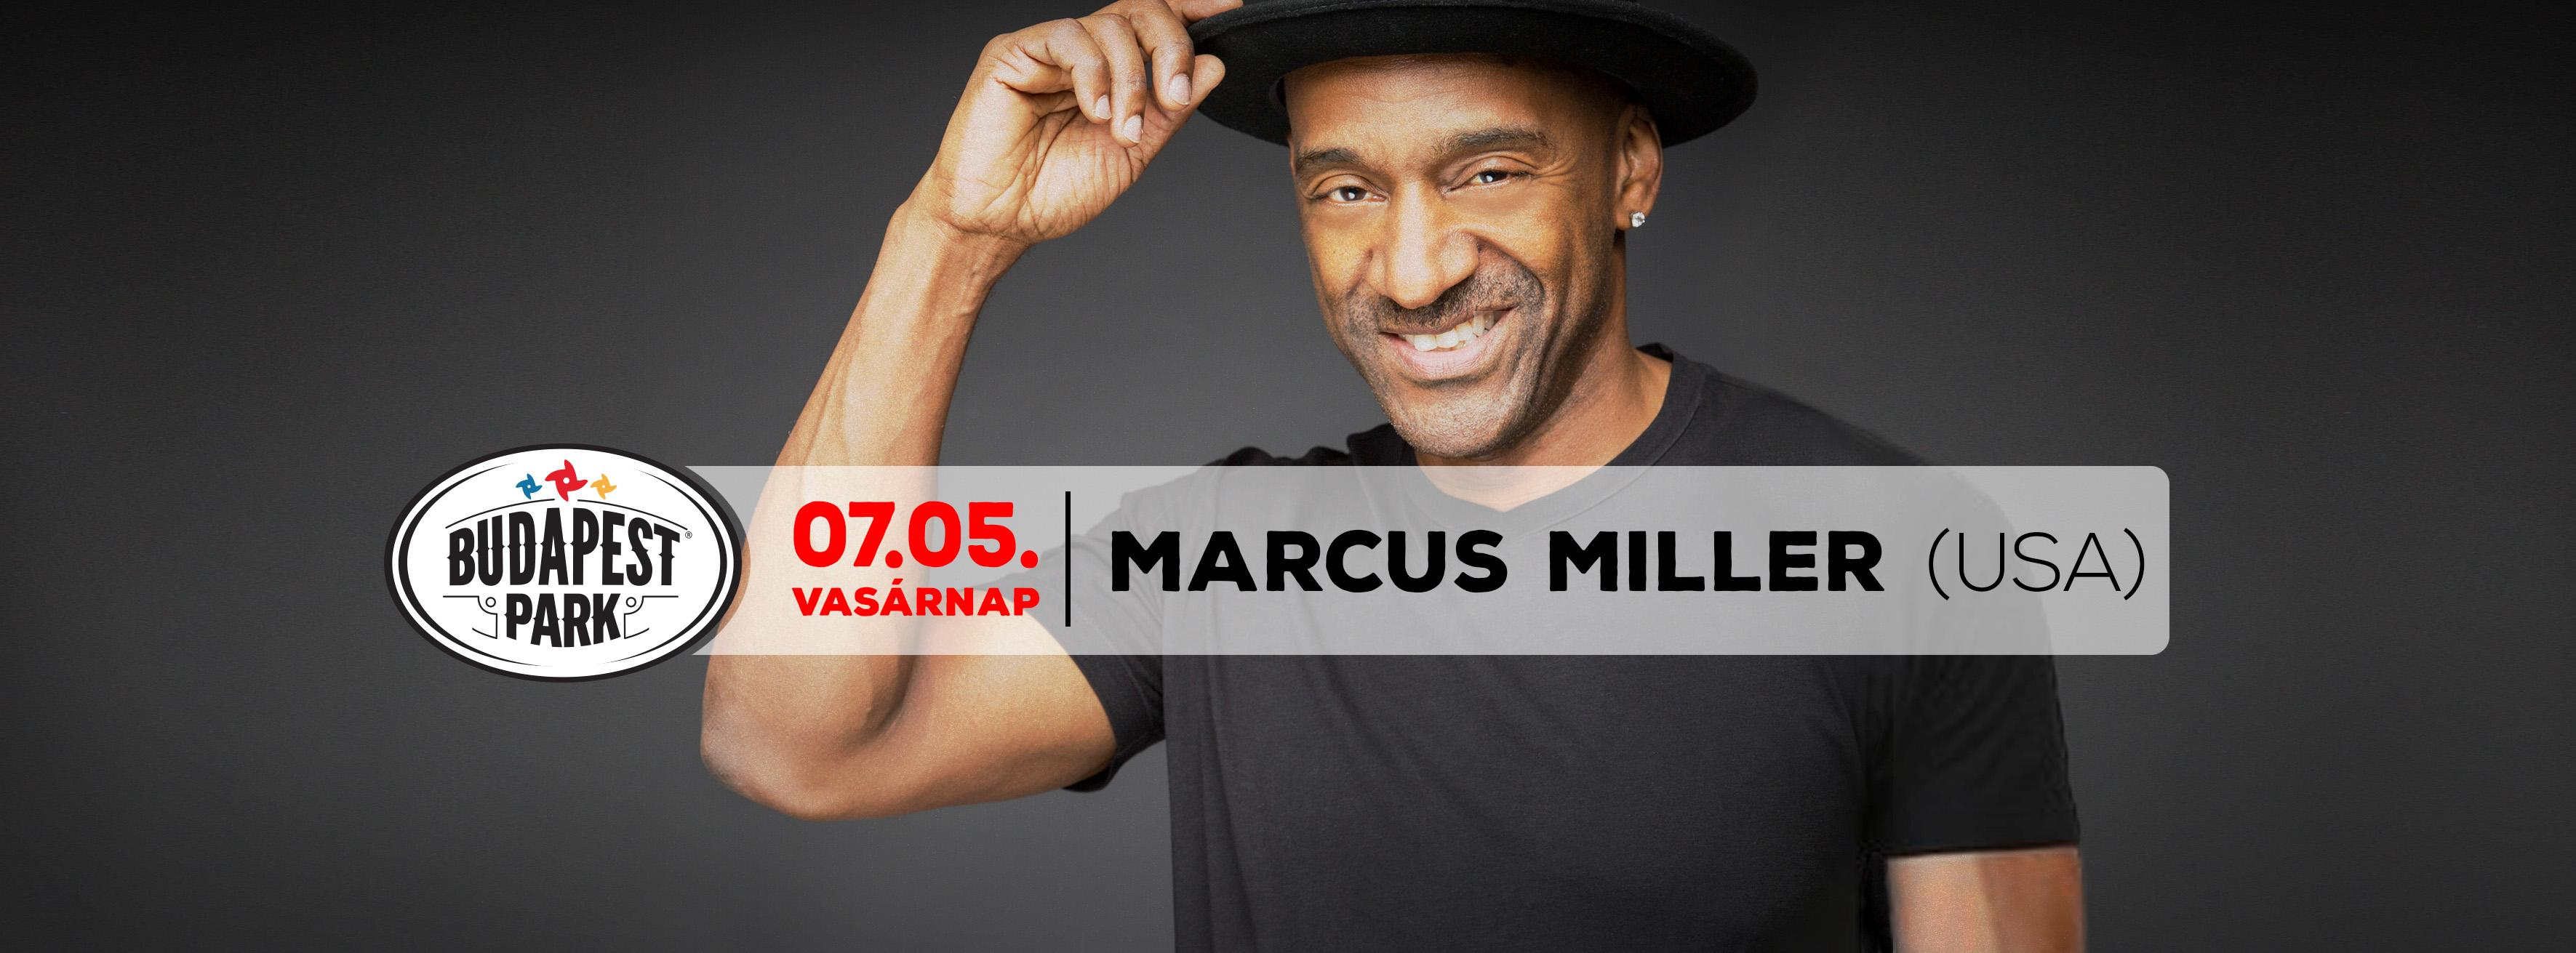 Marcus Miller (USA), Budapest Park, 5 July